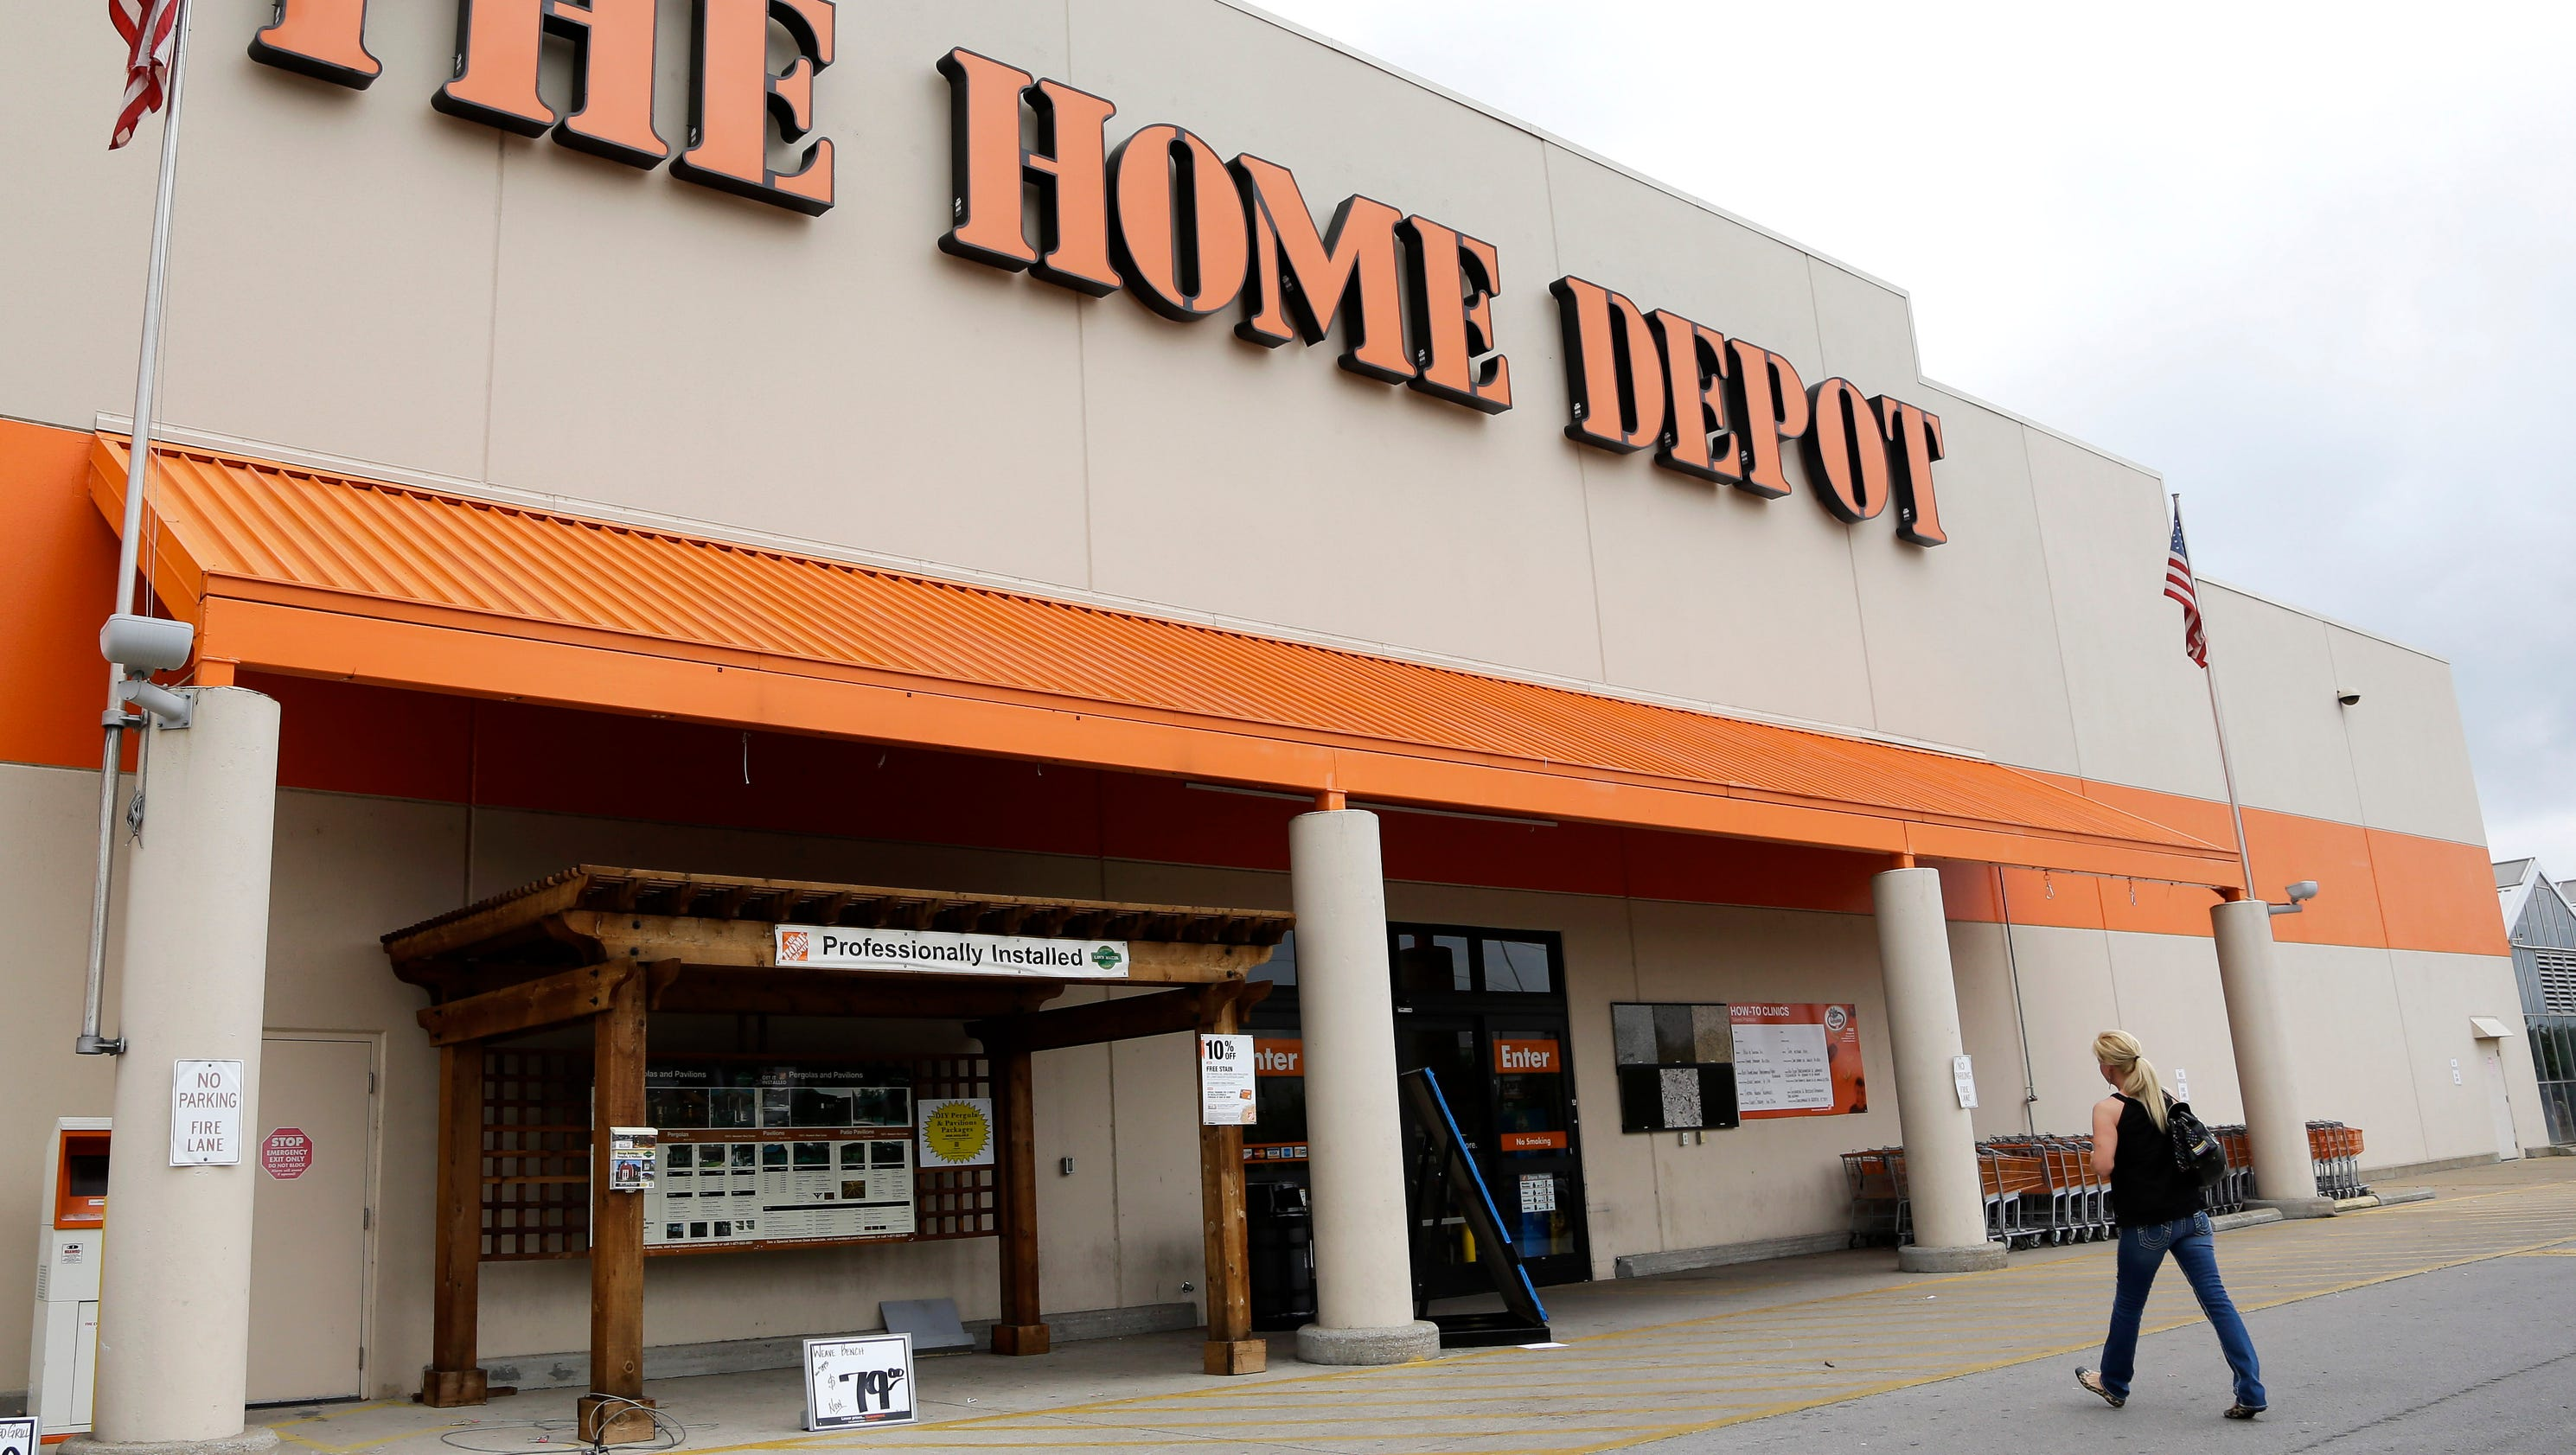 What Did Home Depot Stock Close At Today